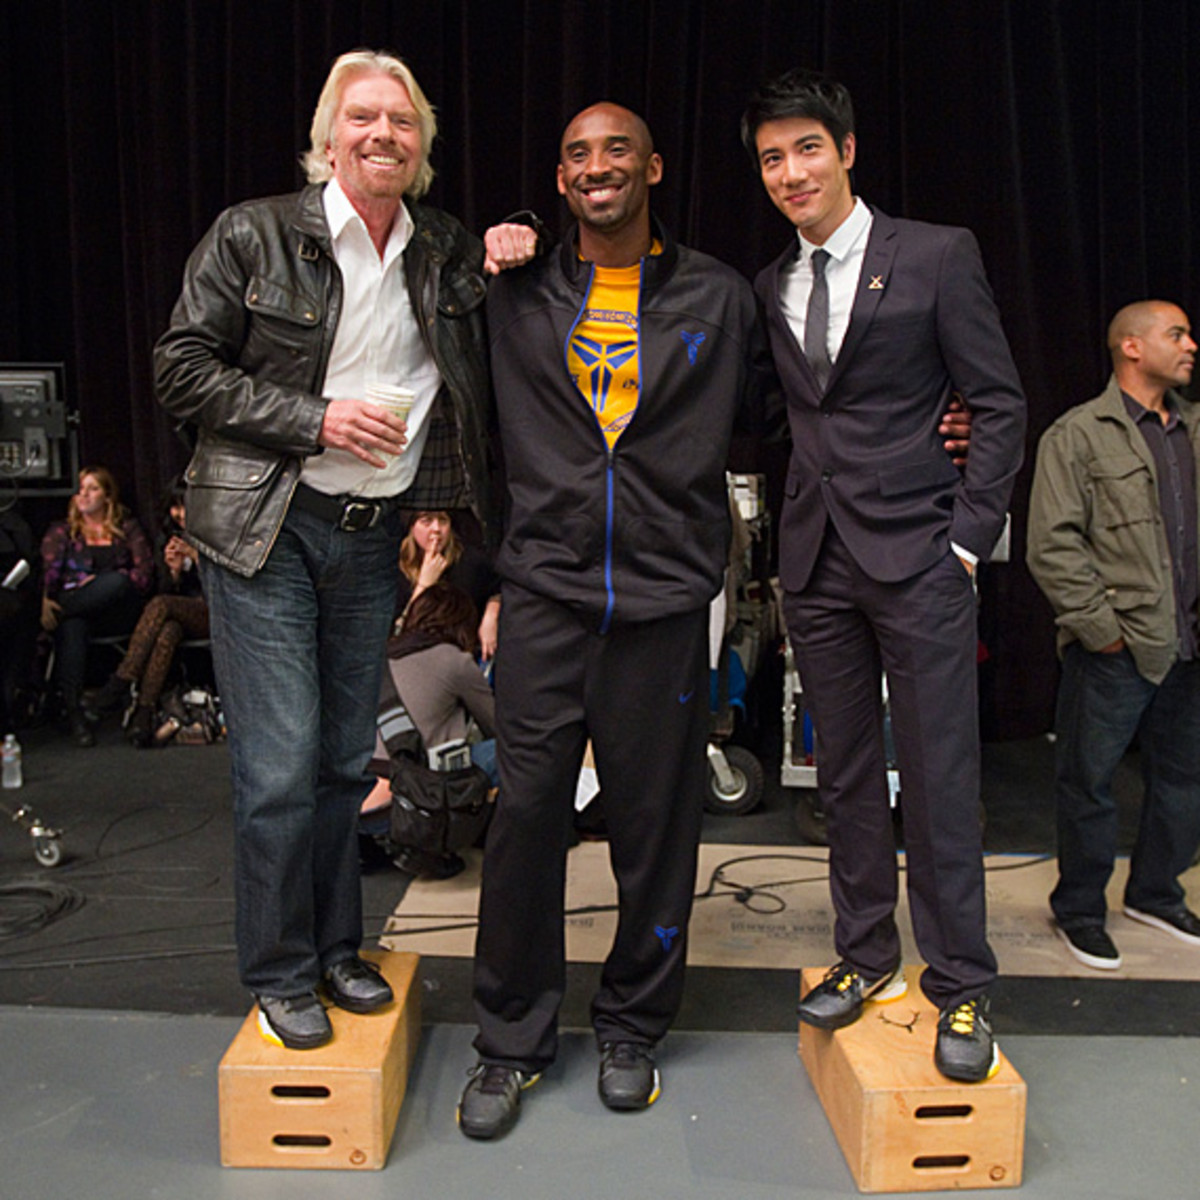 nike-kobesystem-success-for-the-successful-10